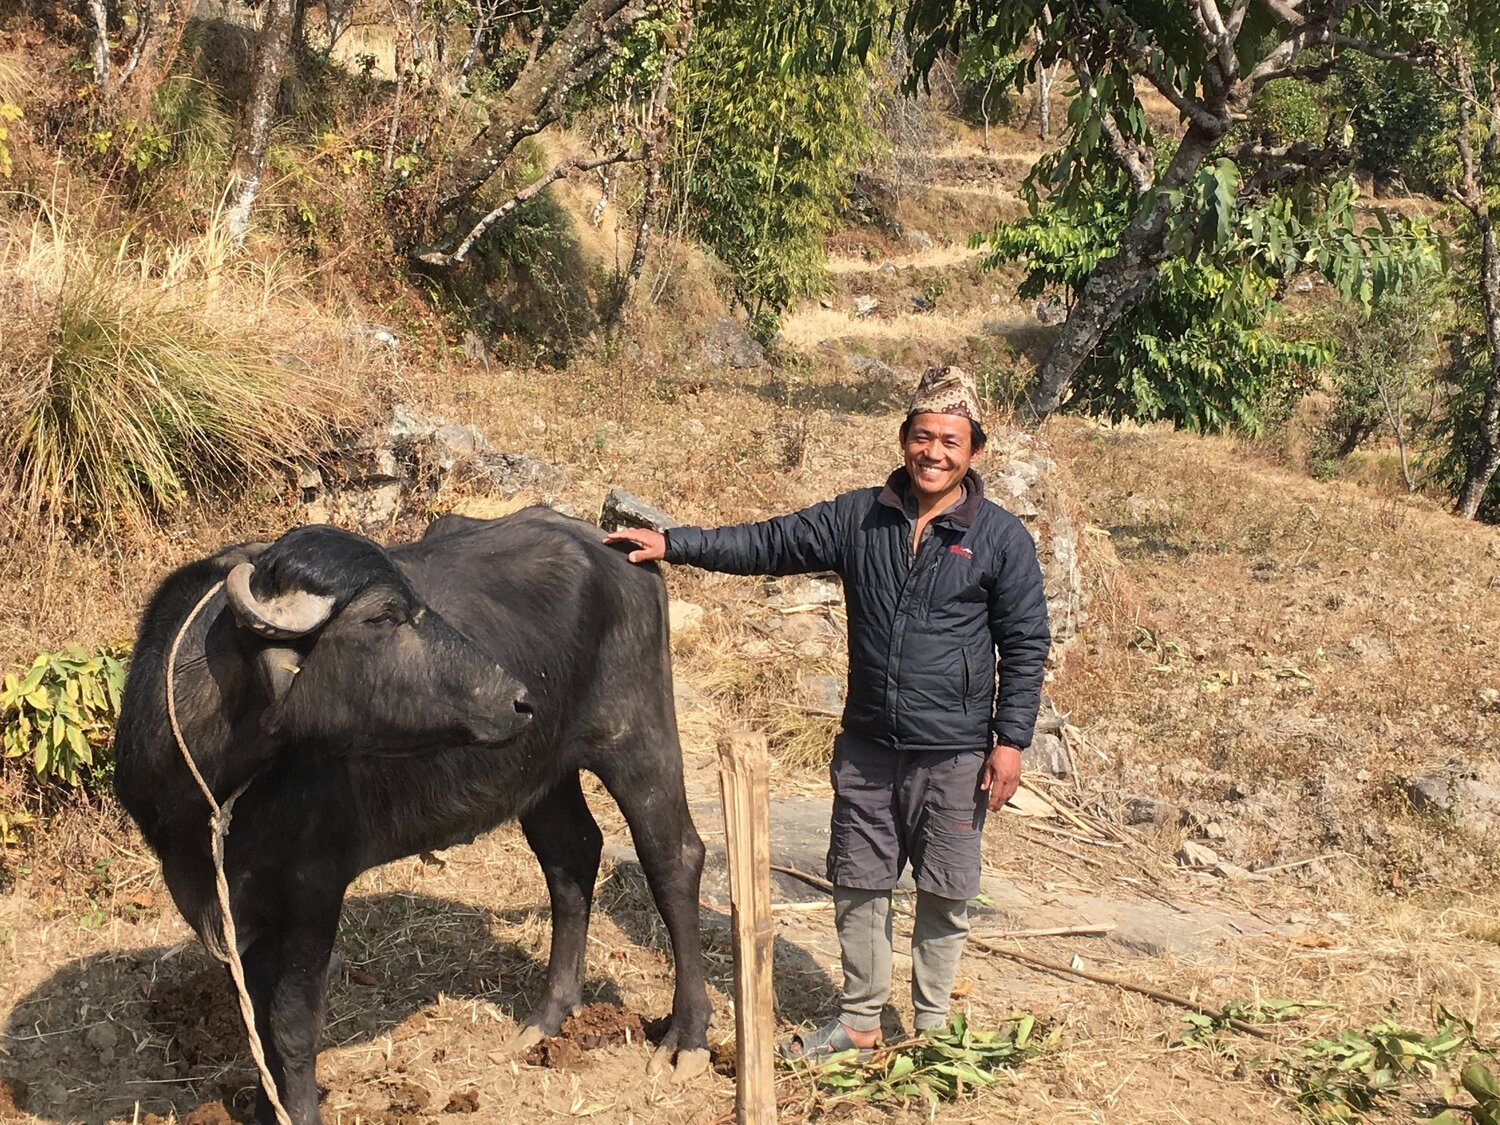 Murra Buffalo and farmer in Deusa Nepal The Glacier Trust